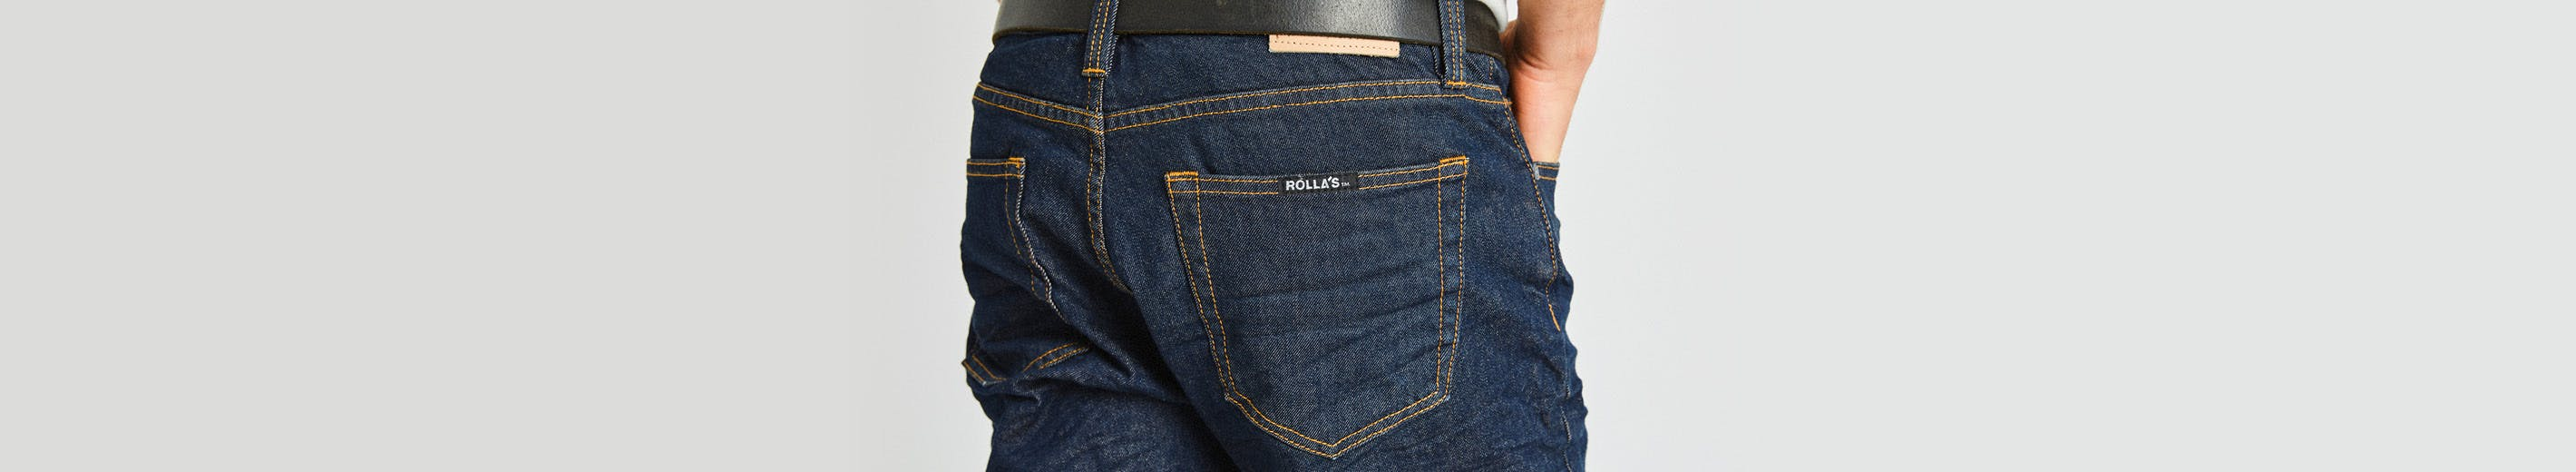 Rolla's Mens Denim Fits